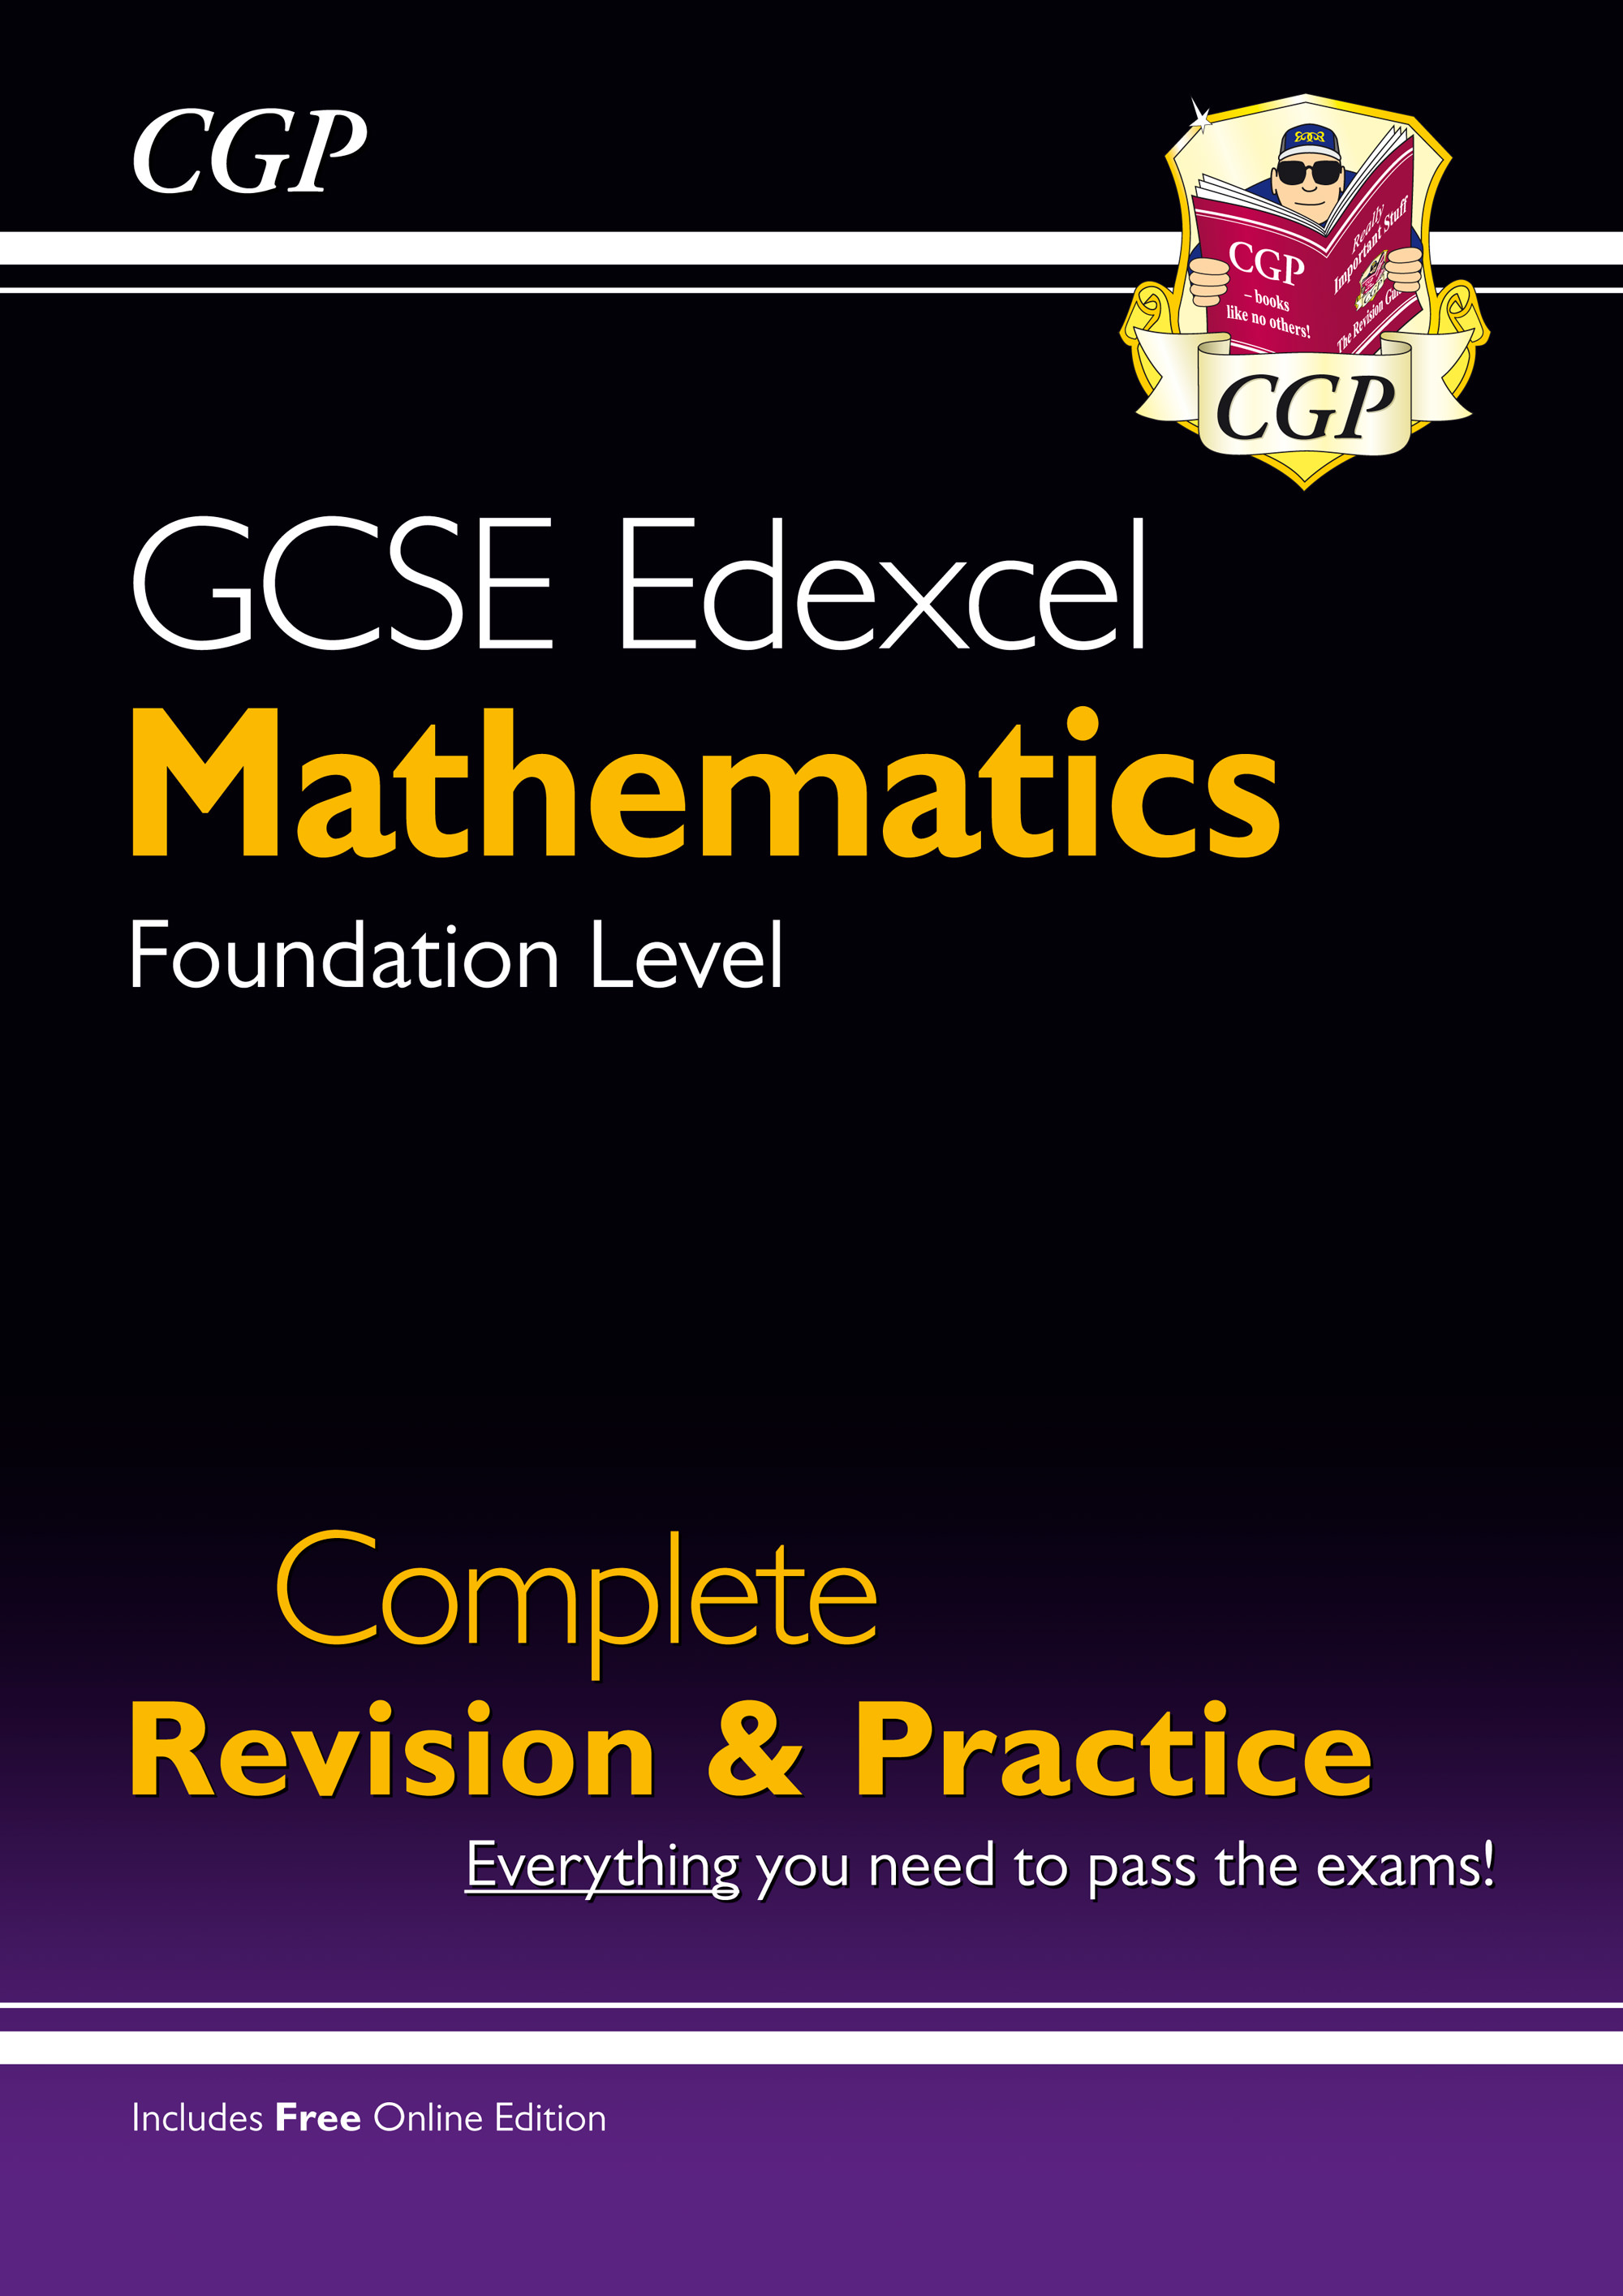 MXFS41 - New GCSE Maths Edexcel Complete Revision & Practice: Foundation - Grade 9-1 Course (with On